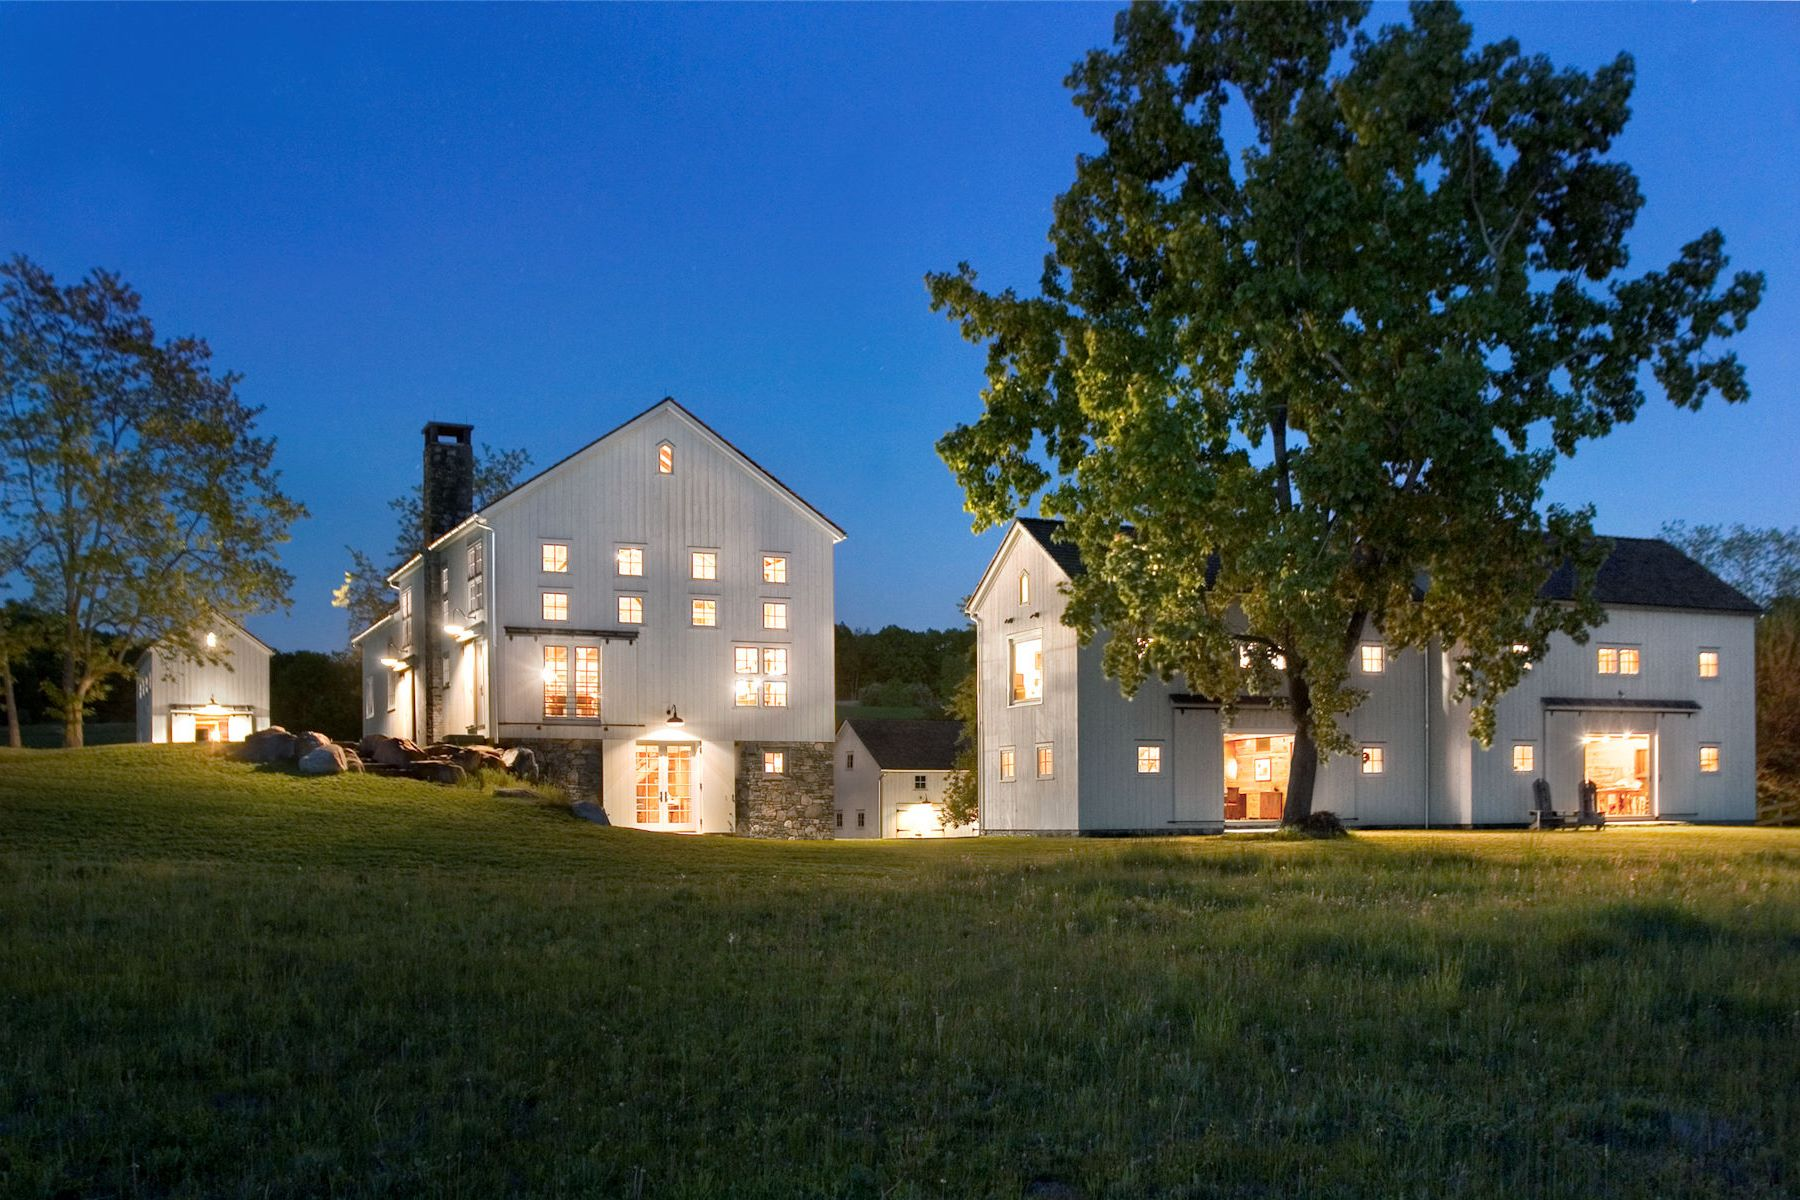 Maison unifamiliale pour l Vente à Four Barns Farm Millbrook, New York 12545 États-Unis